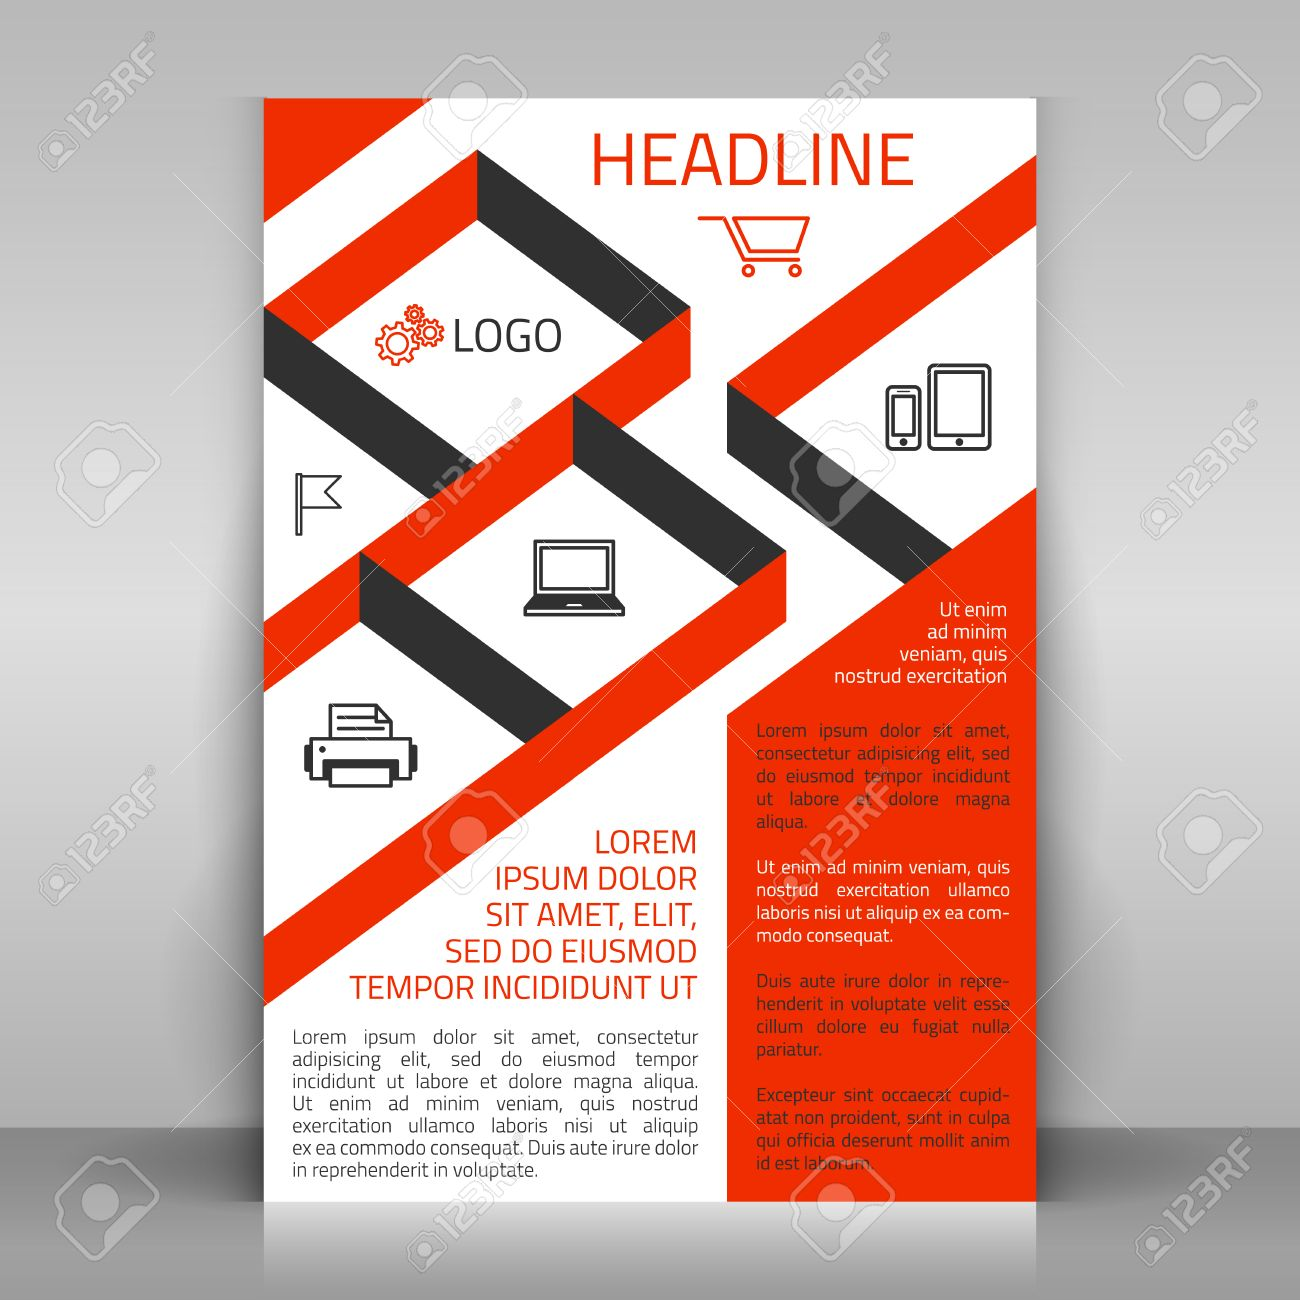 Poster design business - Business Flyer Design Poster Template Vector Layout With Orange Diagonal Elements And Icons